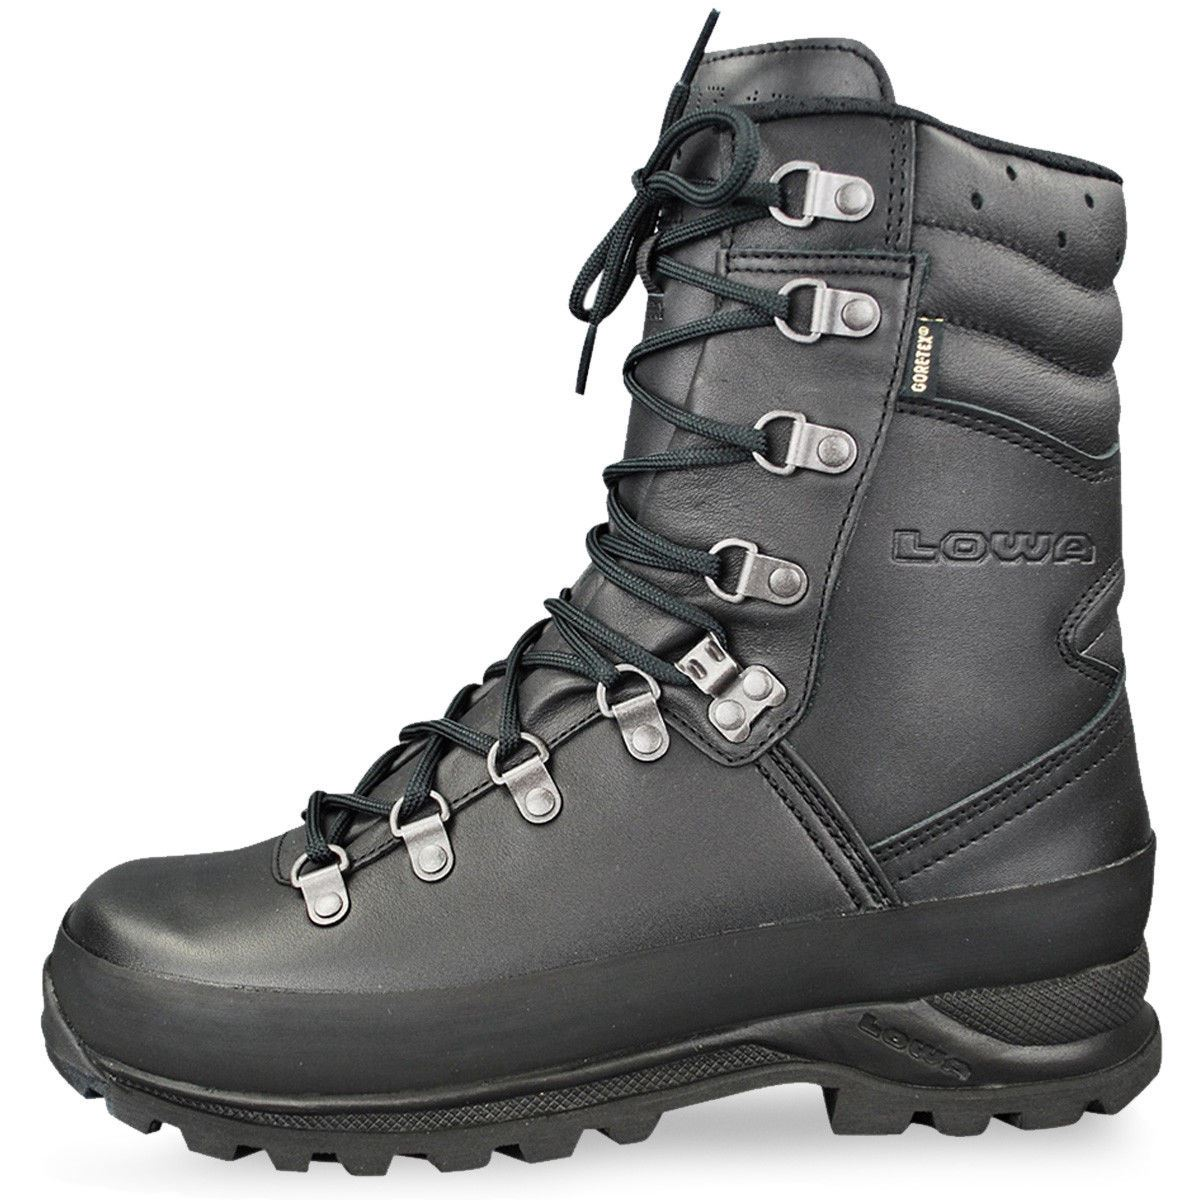 5bf1b2b4ae2 Details about Lowa COMBAT GTX Waterproof Gore-Tex Tactical Boots Black